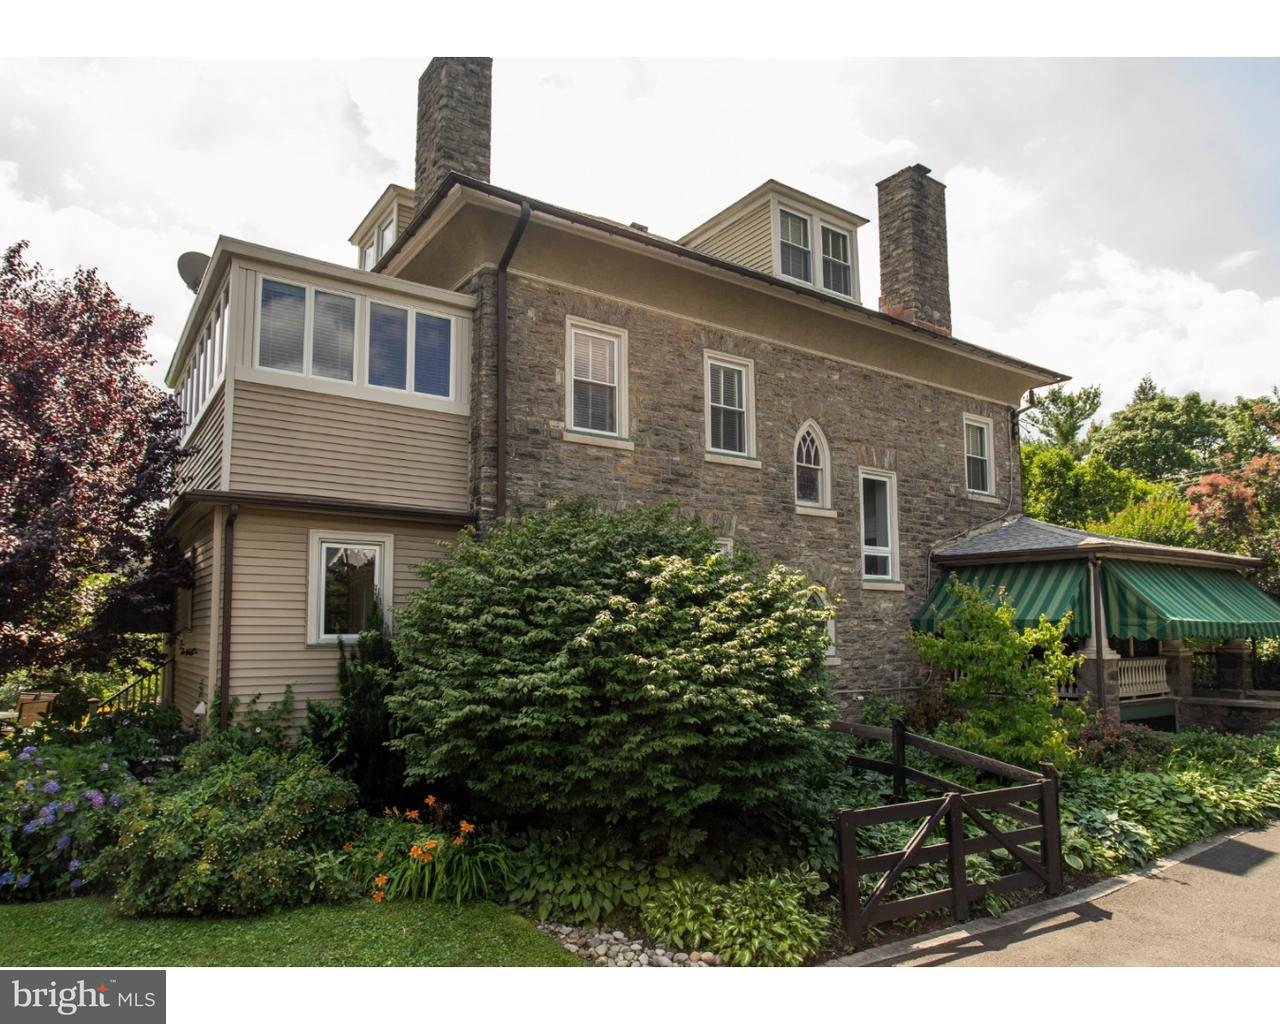 620 WASHINGTON LN, JENKINTOWN - Listed at $679,900, JENKINTOWN